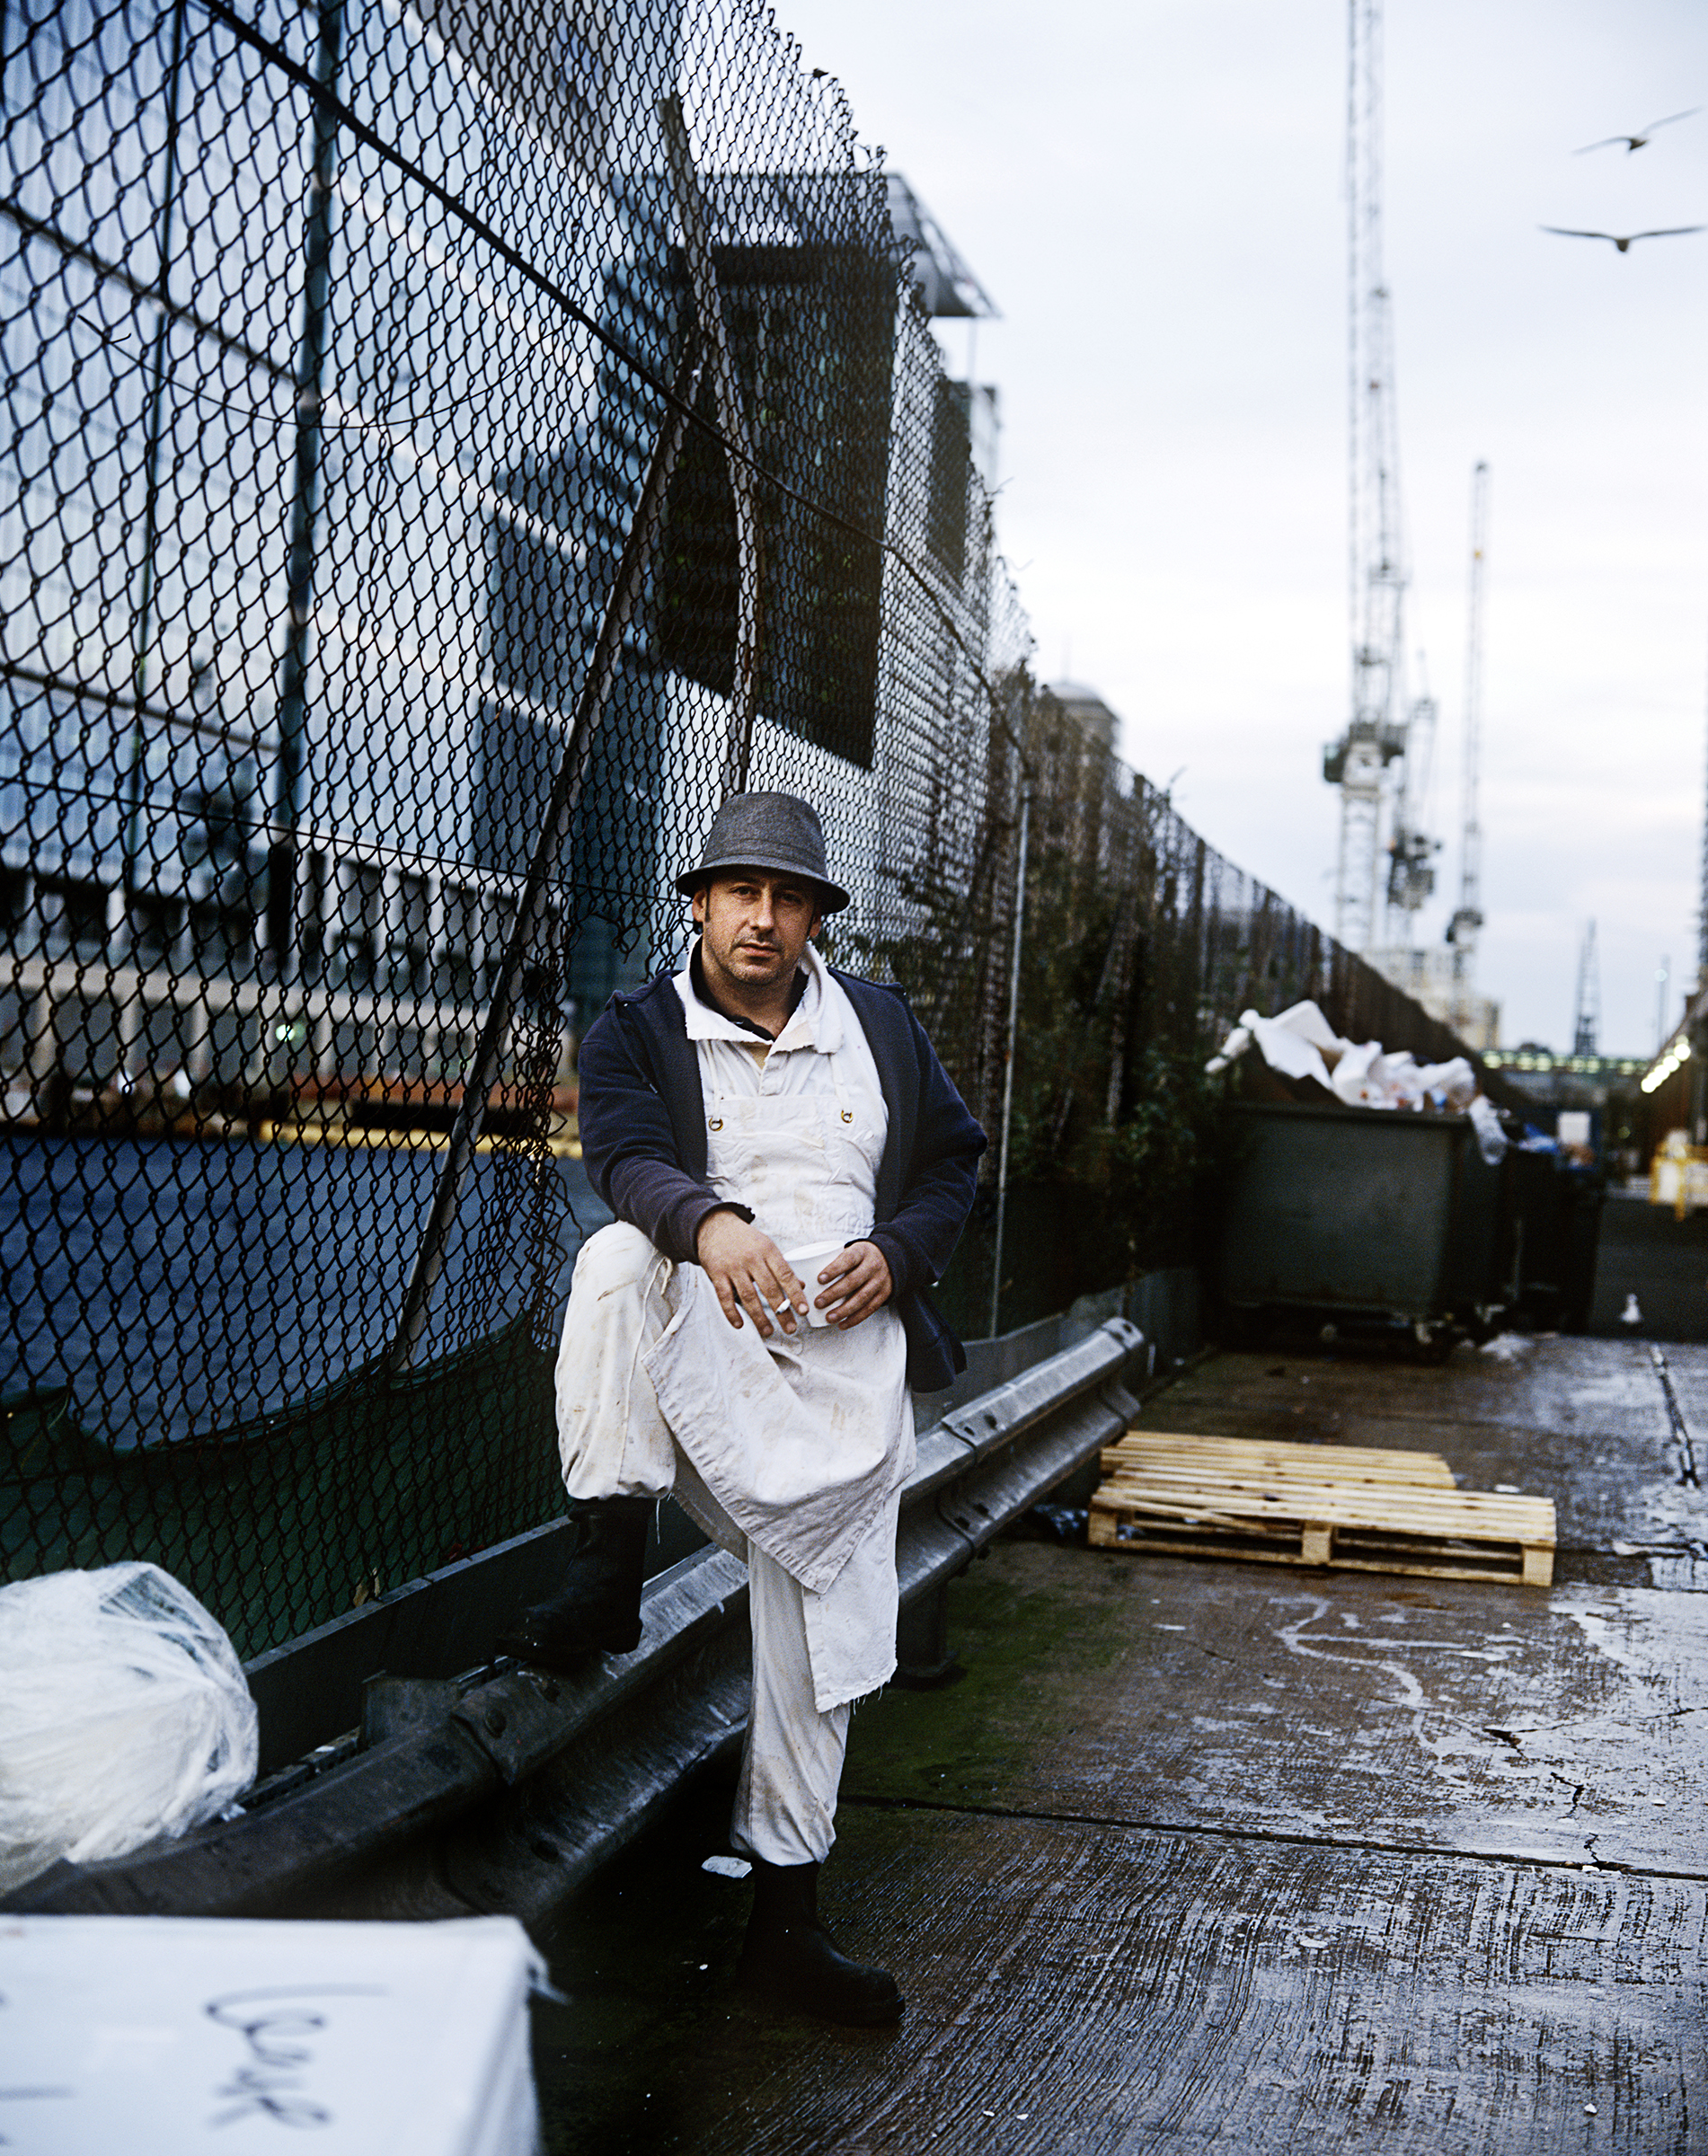 Martin Bicker, fish porter for 24 years.